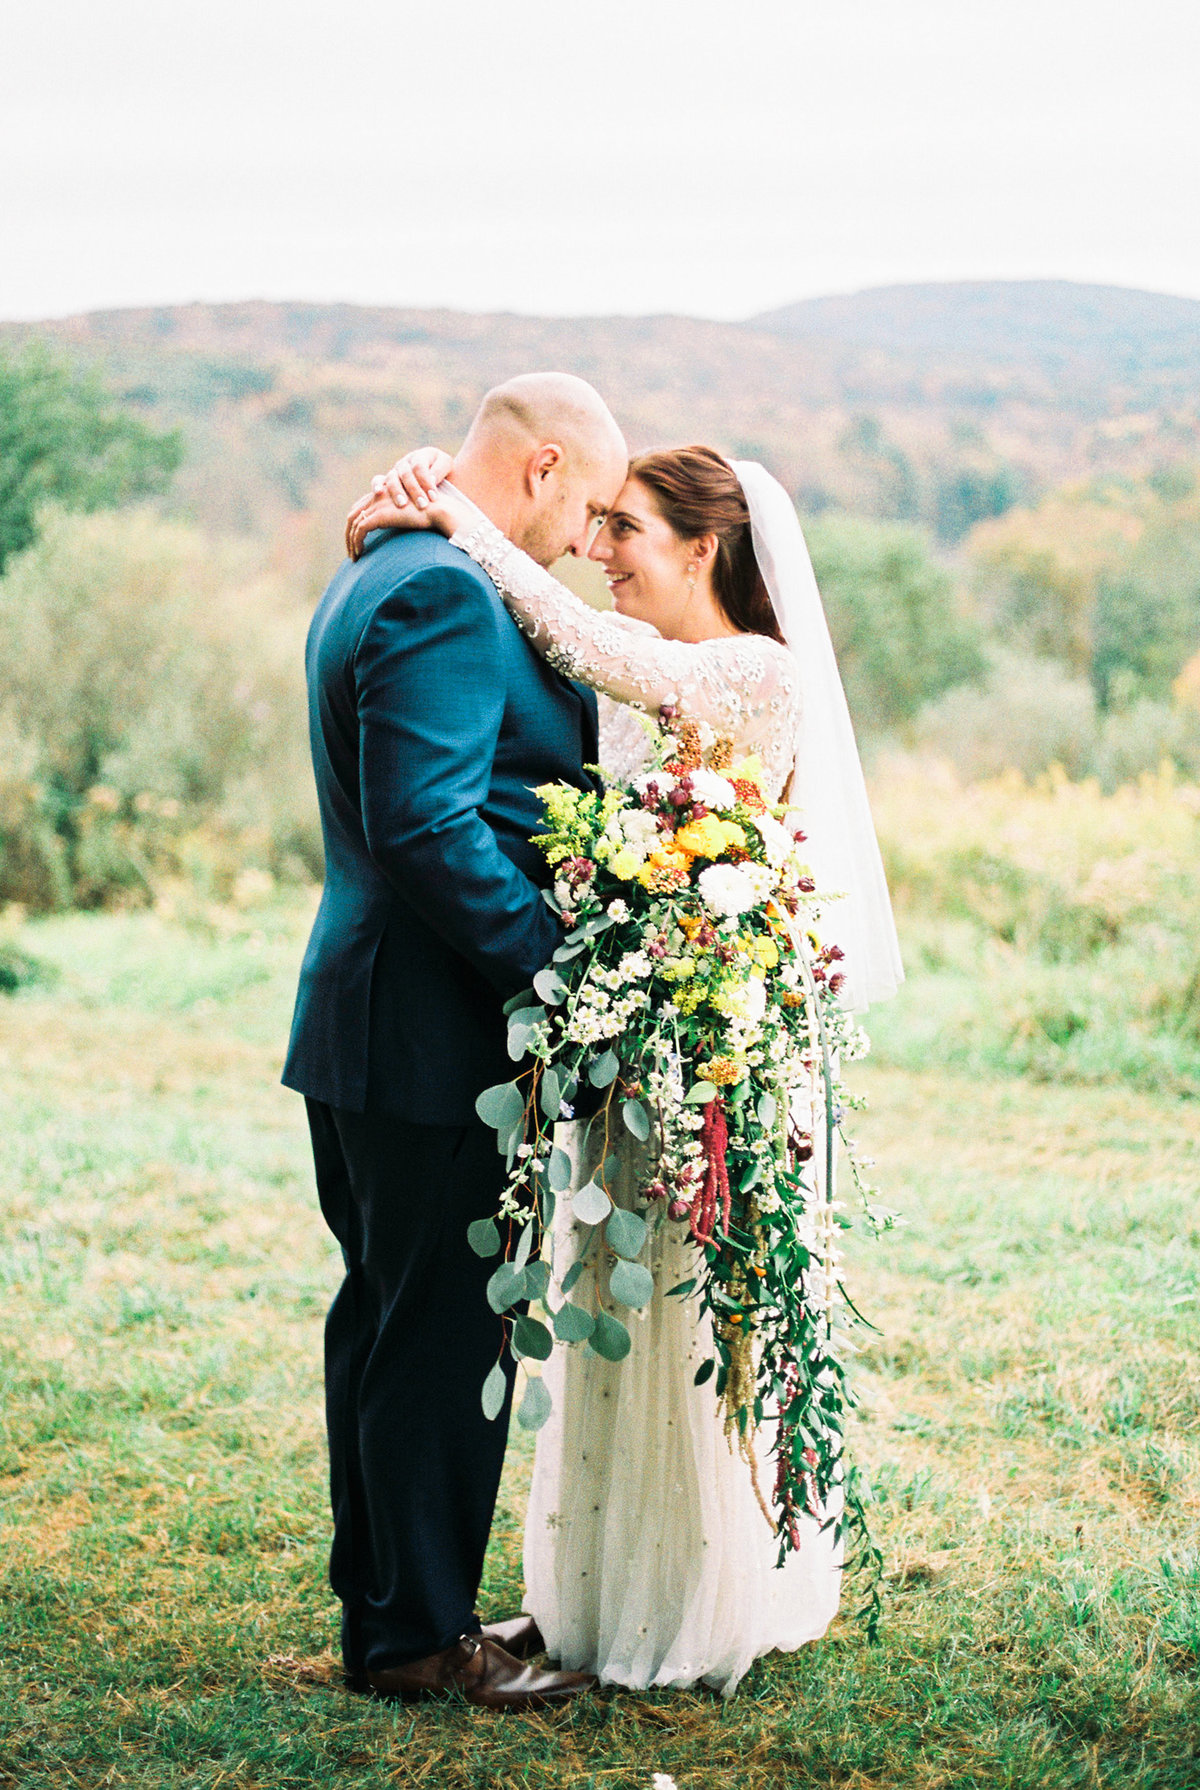 Michelle Behre Photography Private Estate Fall Wedding Dallas Pennsylvania New Jersey Fine Art Wedding Photographer New Jersey Wedding Photography Lake Louise Wedding Photographer Philly Wedding Photographer NJ Wedding Photographers BHLDN Bride-158